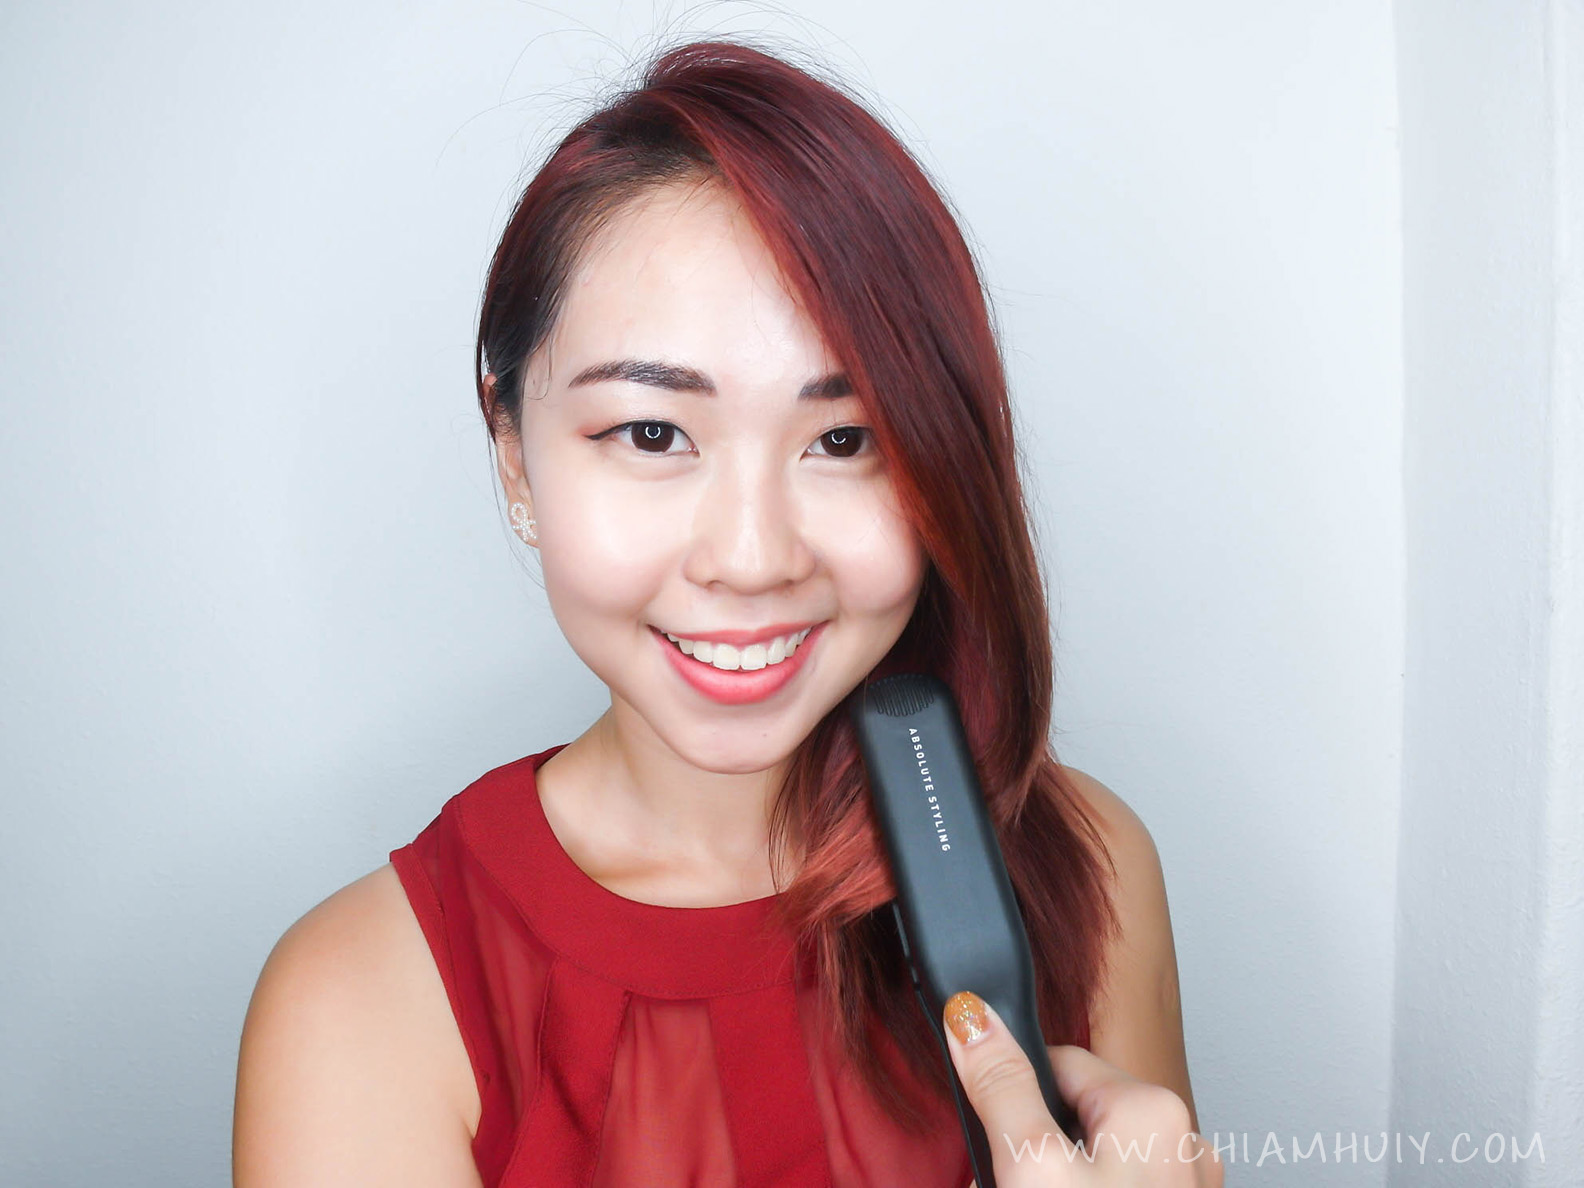 Straighten Your Hair With Glampalm Hair Straightener